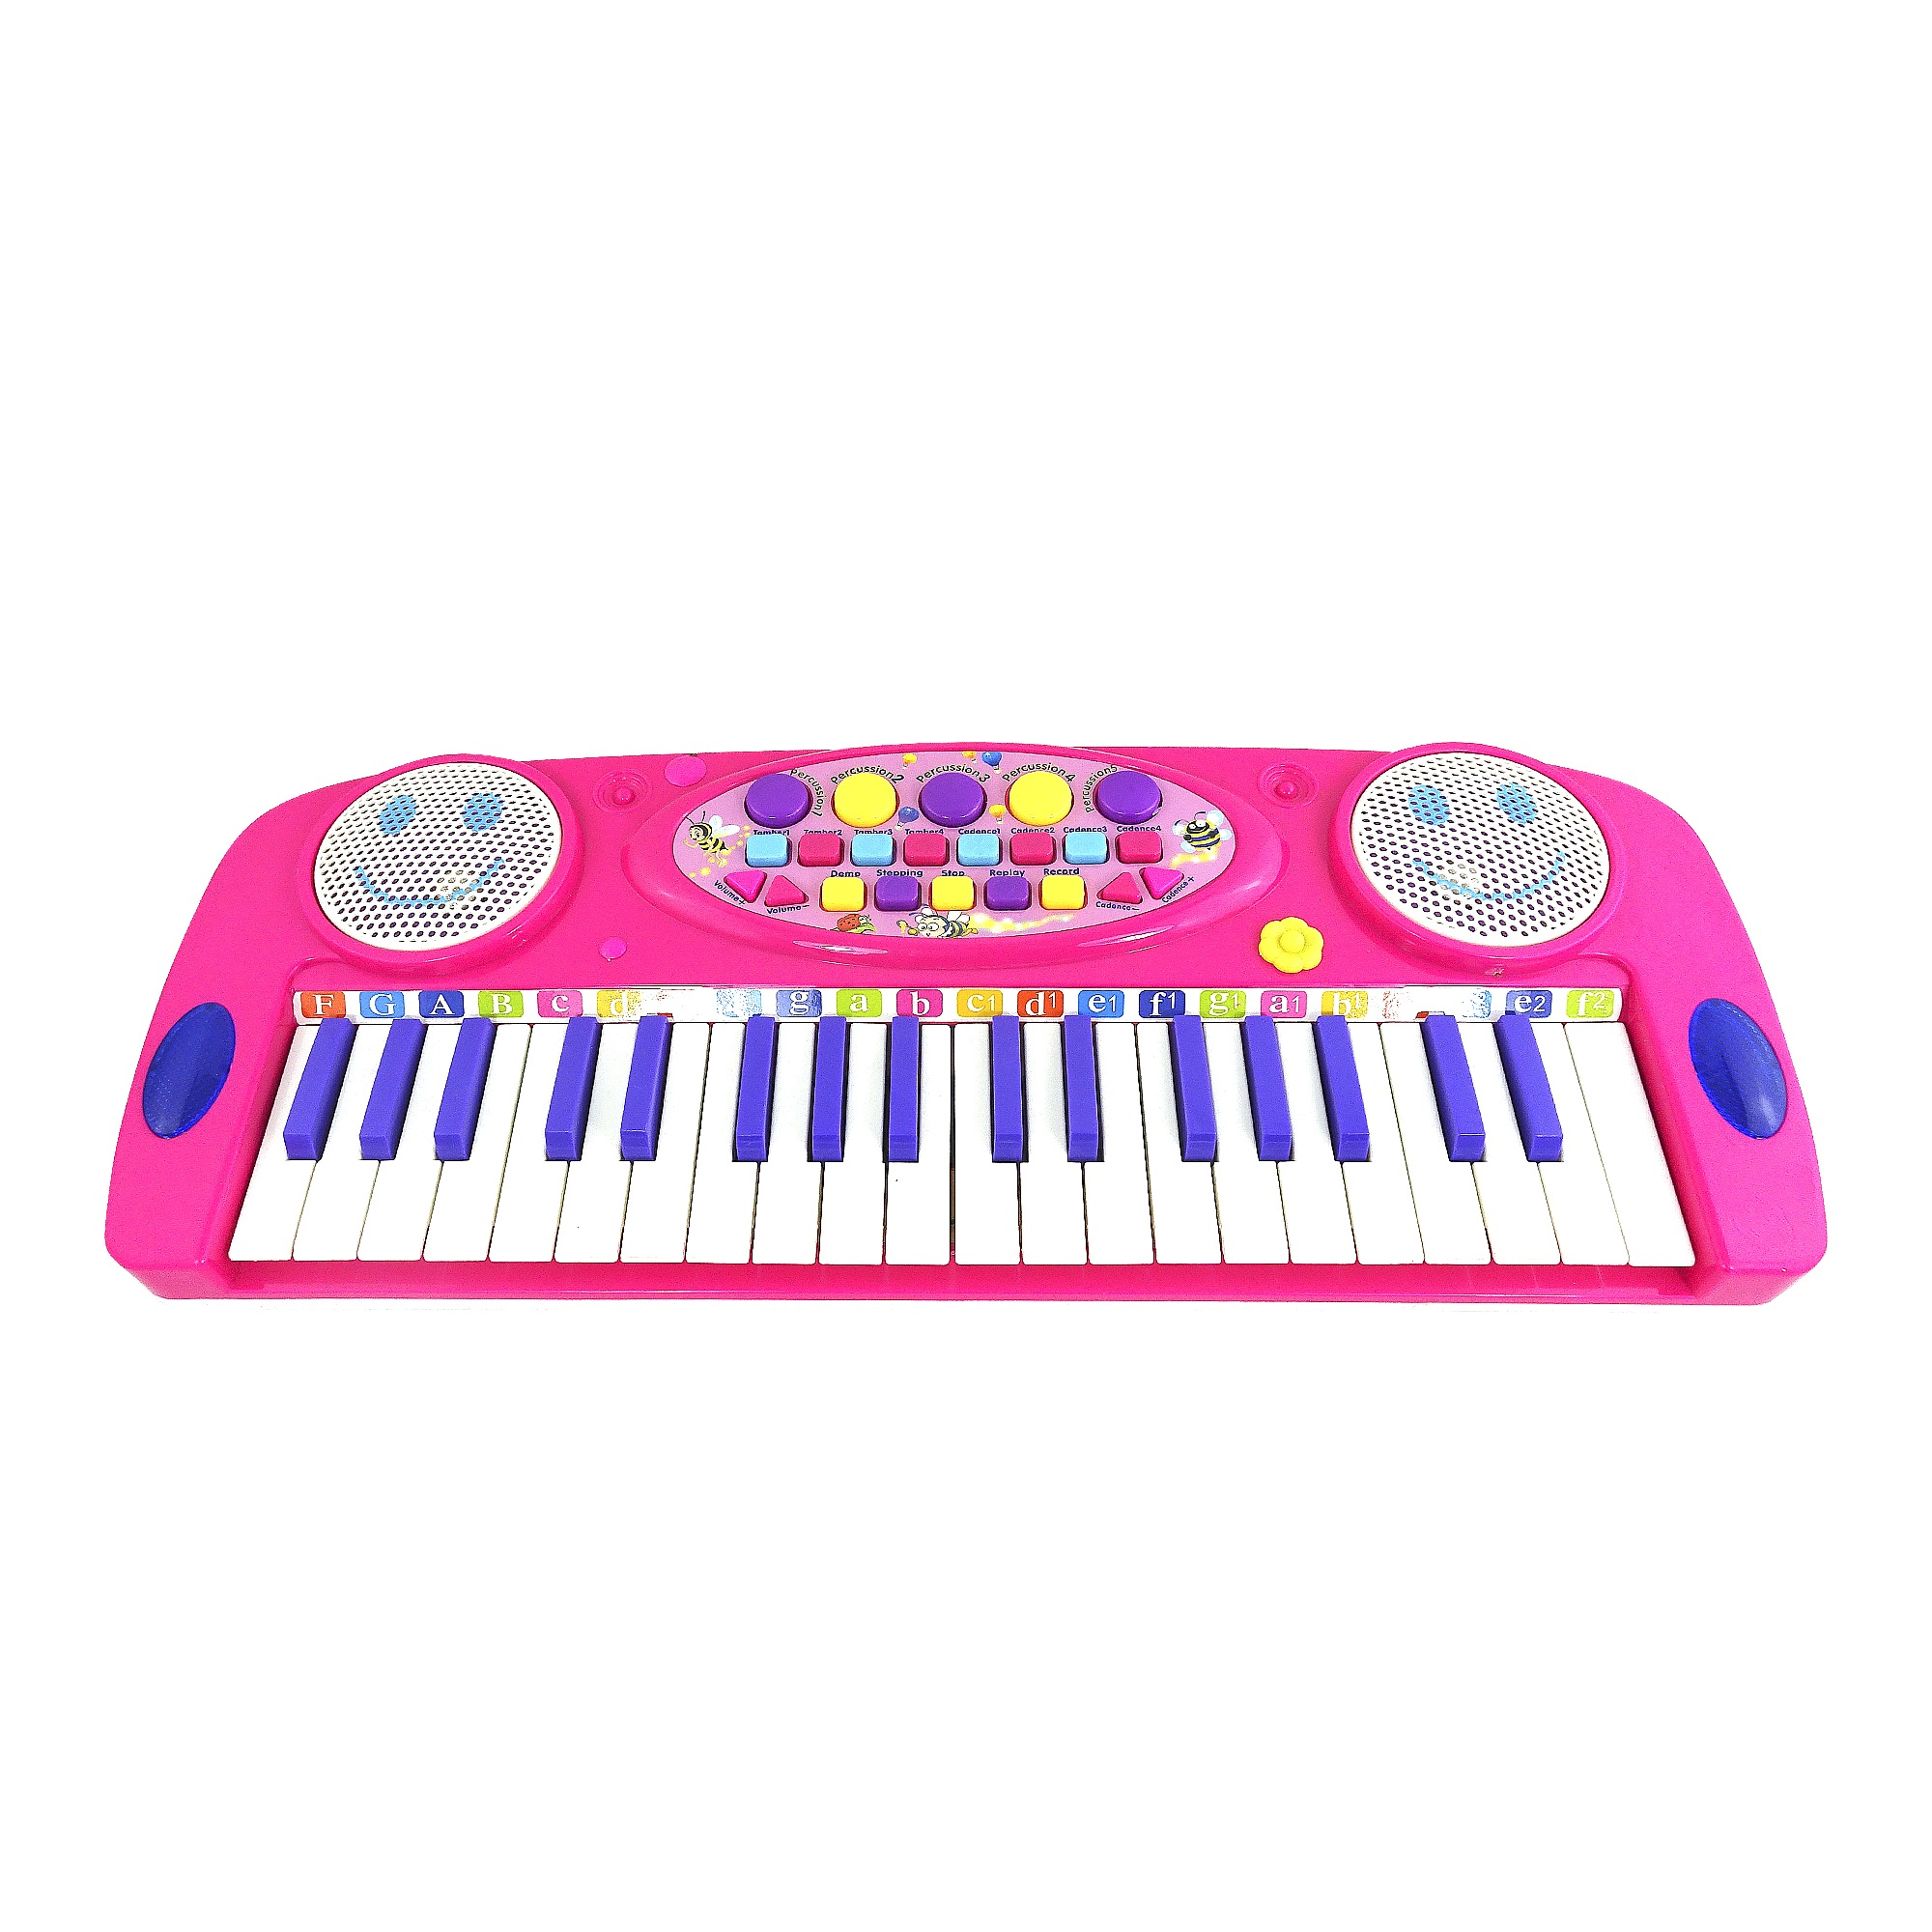 Toy Piano Happy Face Musical Keyboard For Kids Battery Operated Fun Sound Toy by